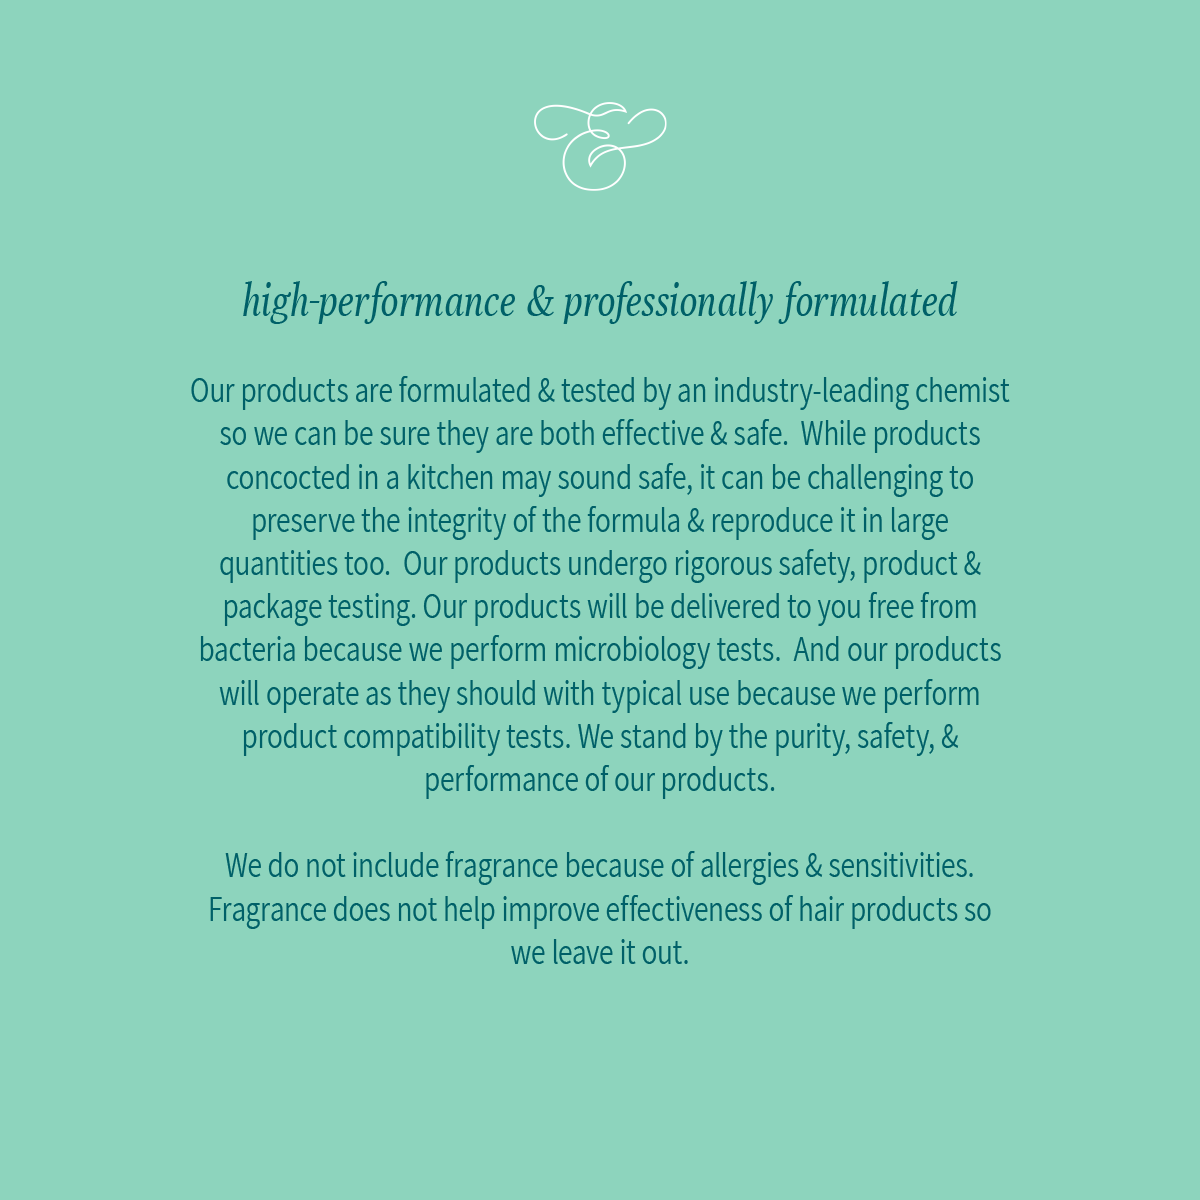 high-performance & professionally formulated